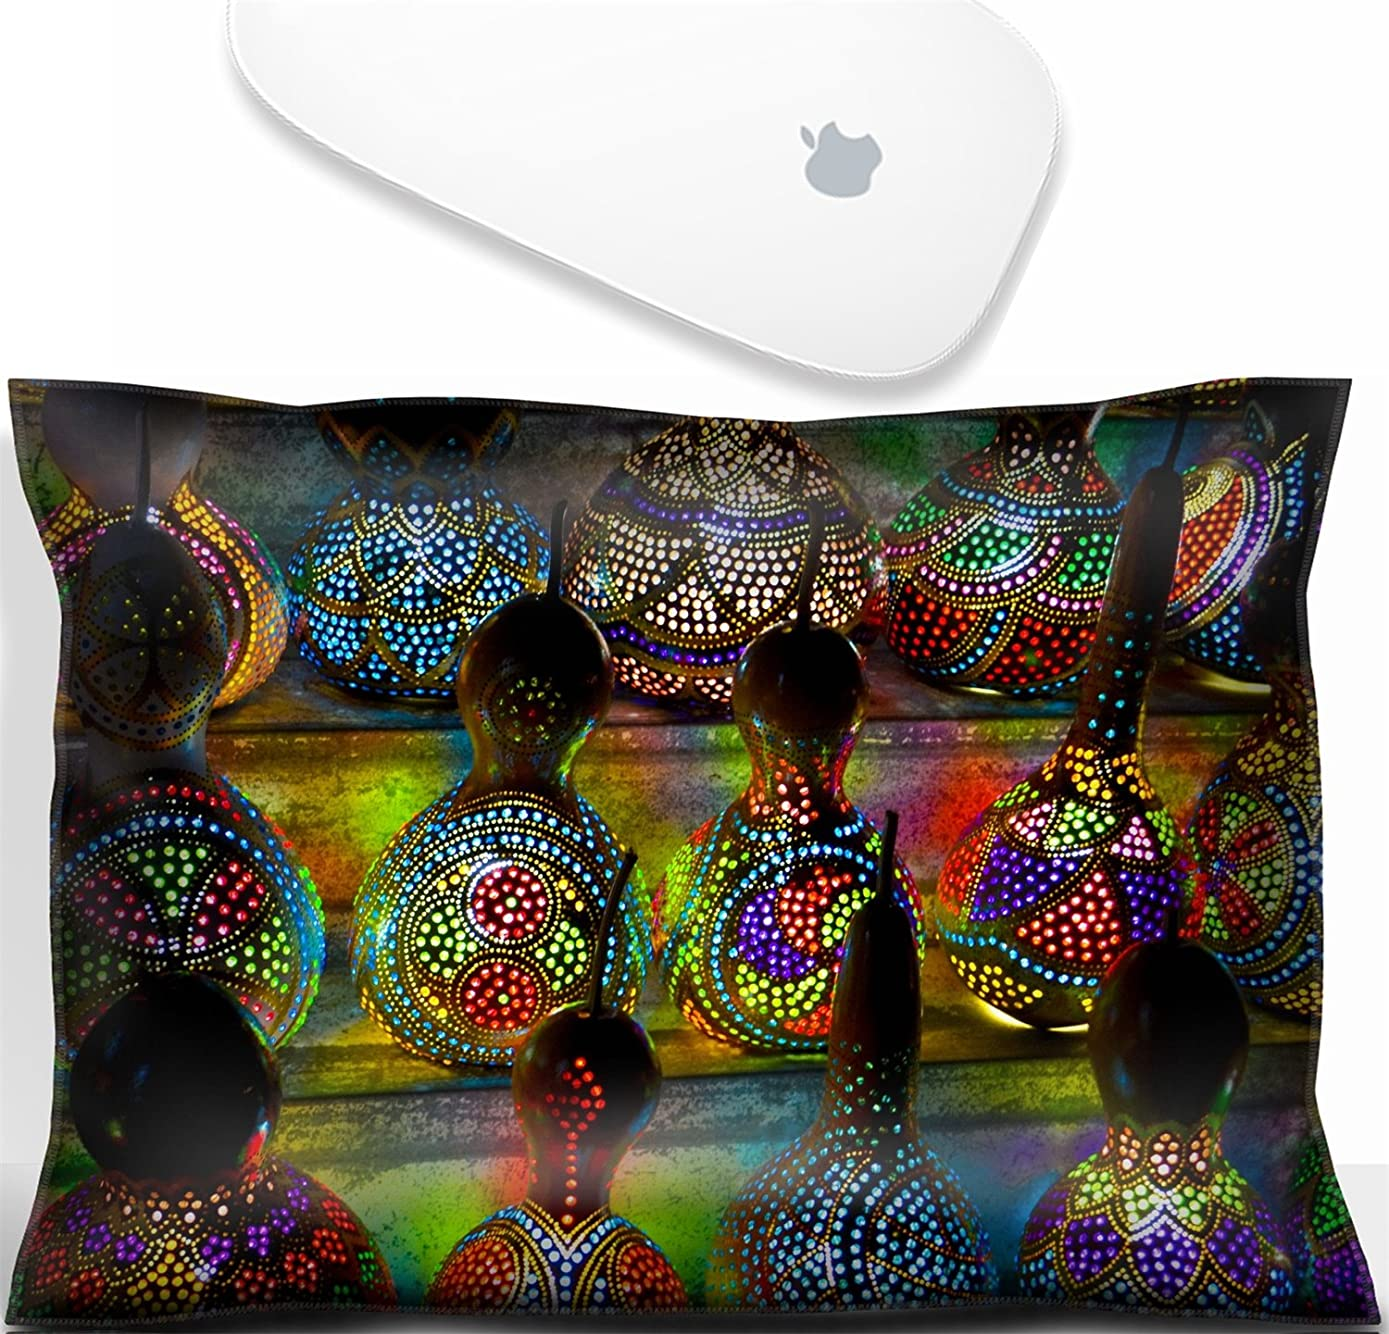 Luxlady Mouse Wrist Rest Office Decor Wrist Supporter Pillow IMAGE: 22182795 Turkish Lamps at the Market in Istanbul Turkey